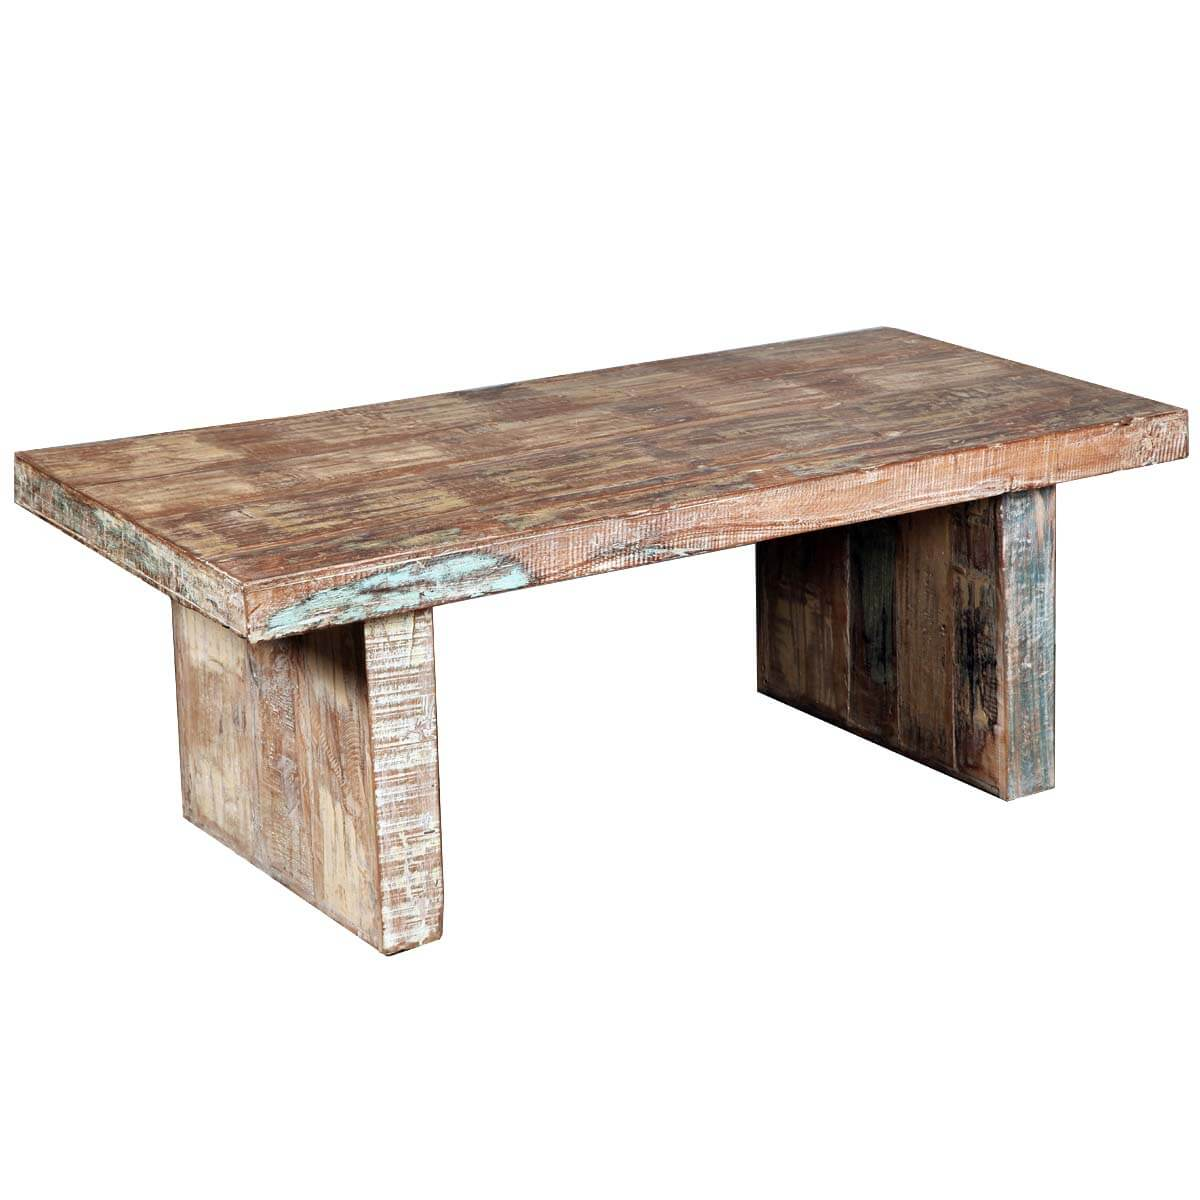 Rustic mission reclaimed wood distressed coffee table Recycled wood coffee table